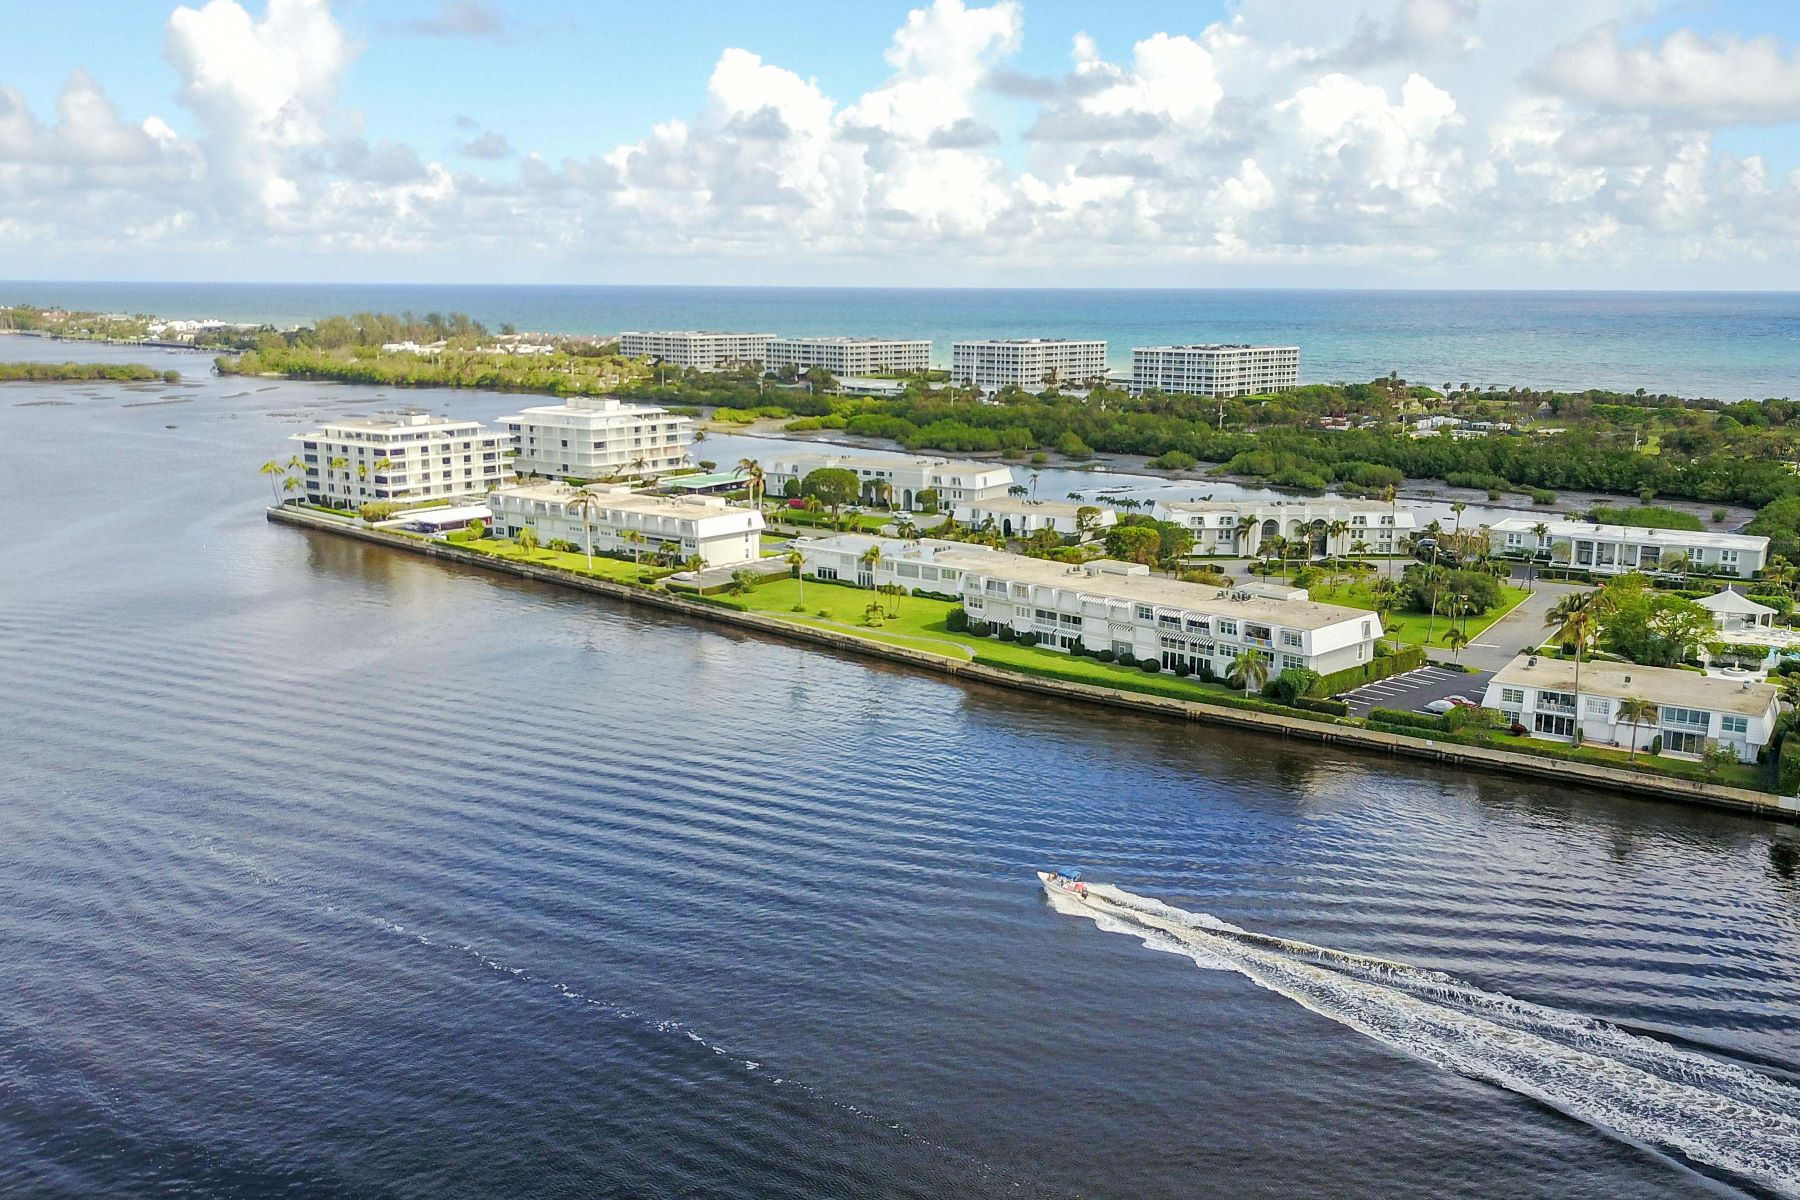 Additional photo for property listing at Ibis Isle Condo 2180 Ibis Isle Rd # 2 Palm Beach, Florida 33480 United States